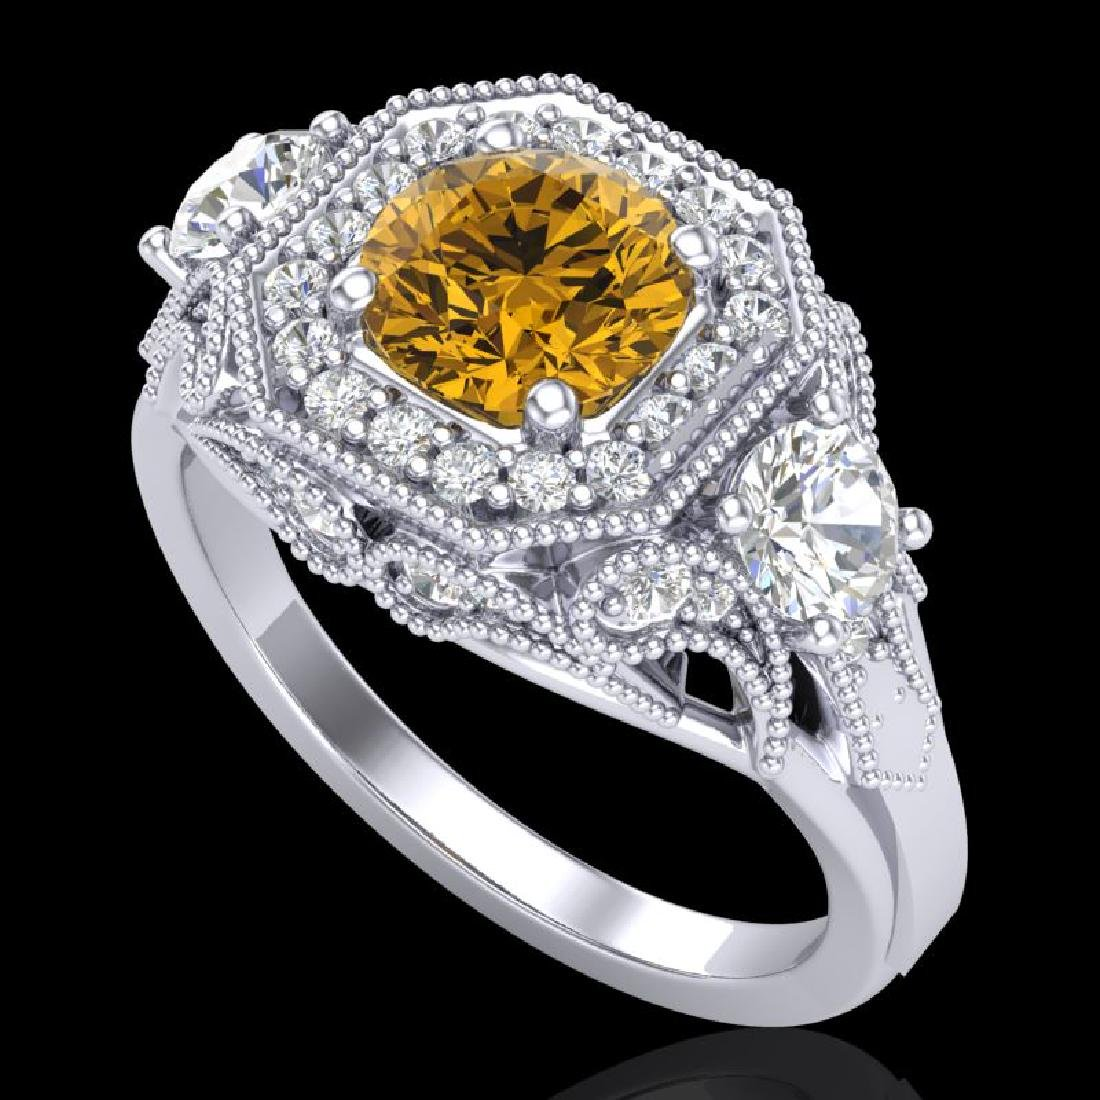 2.11 CTW Intense Fancy Yellow Diamond Art Deco 3 Stone